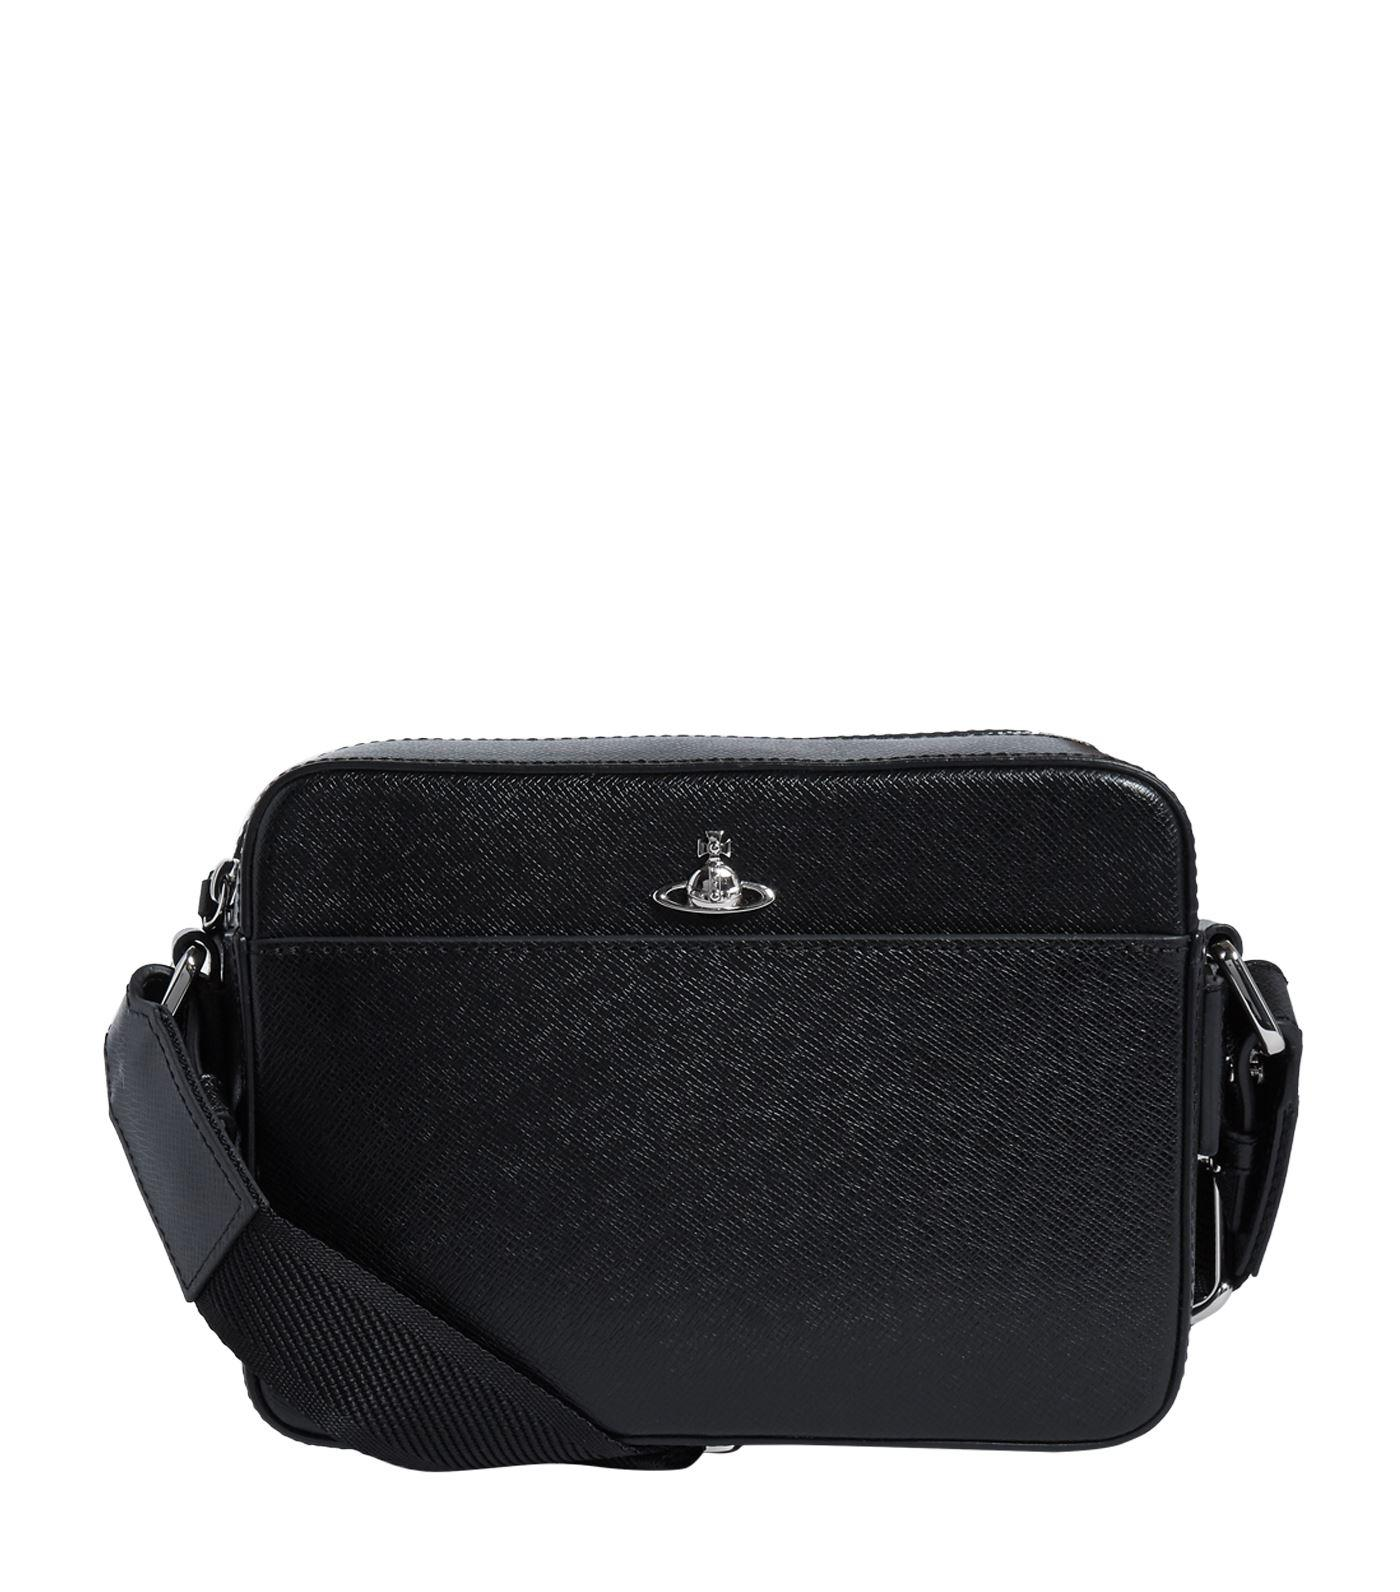 84d88e75e68a Lyst - Vivienne Westwood Small Leather Orb Cross Body Bag in Black ...